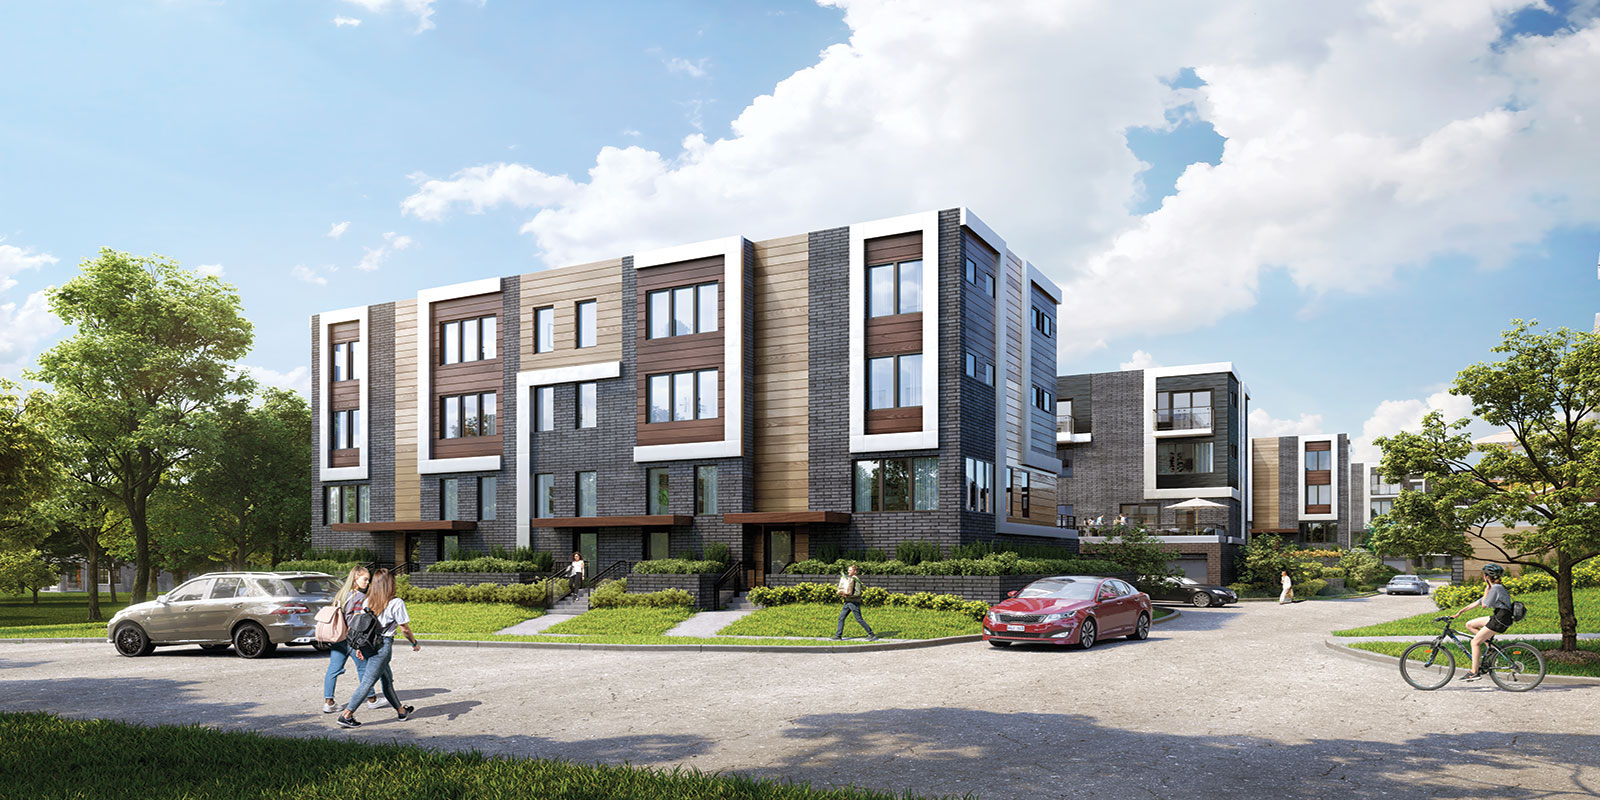 Exterior rendering of Parkside Towns at Saturday during the day.